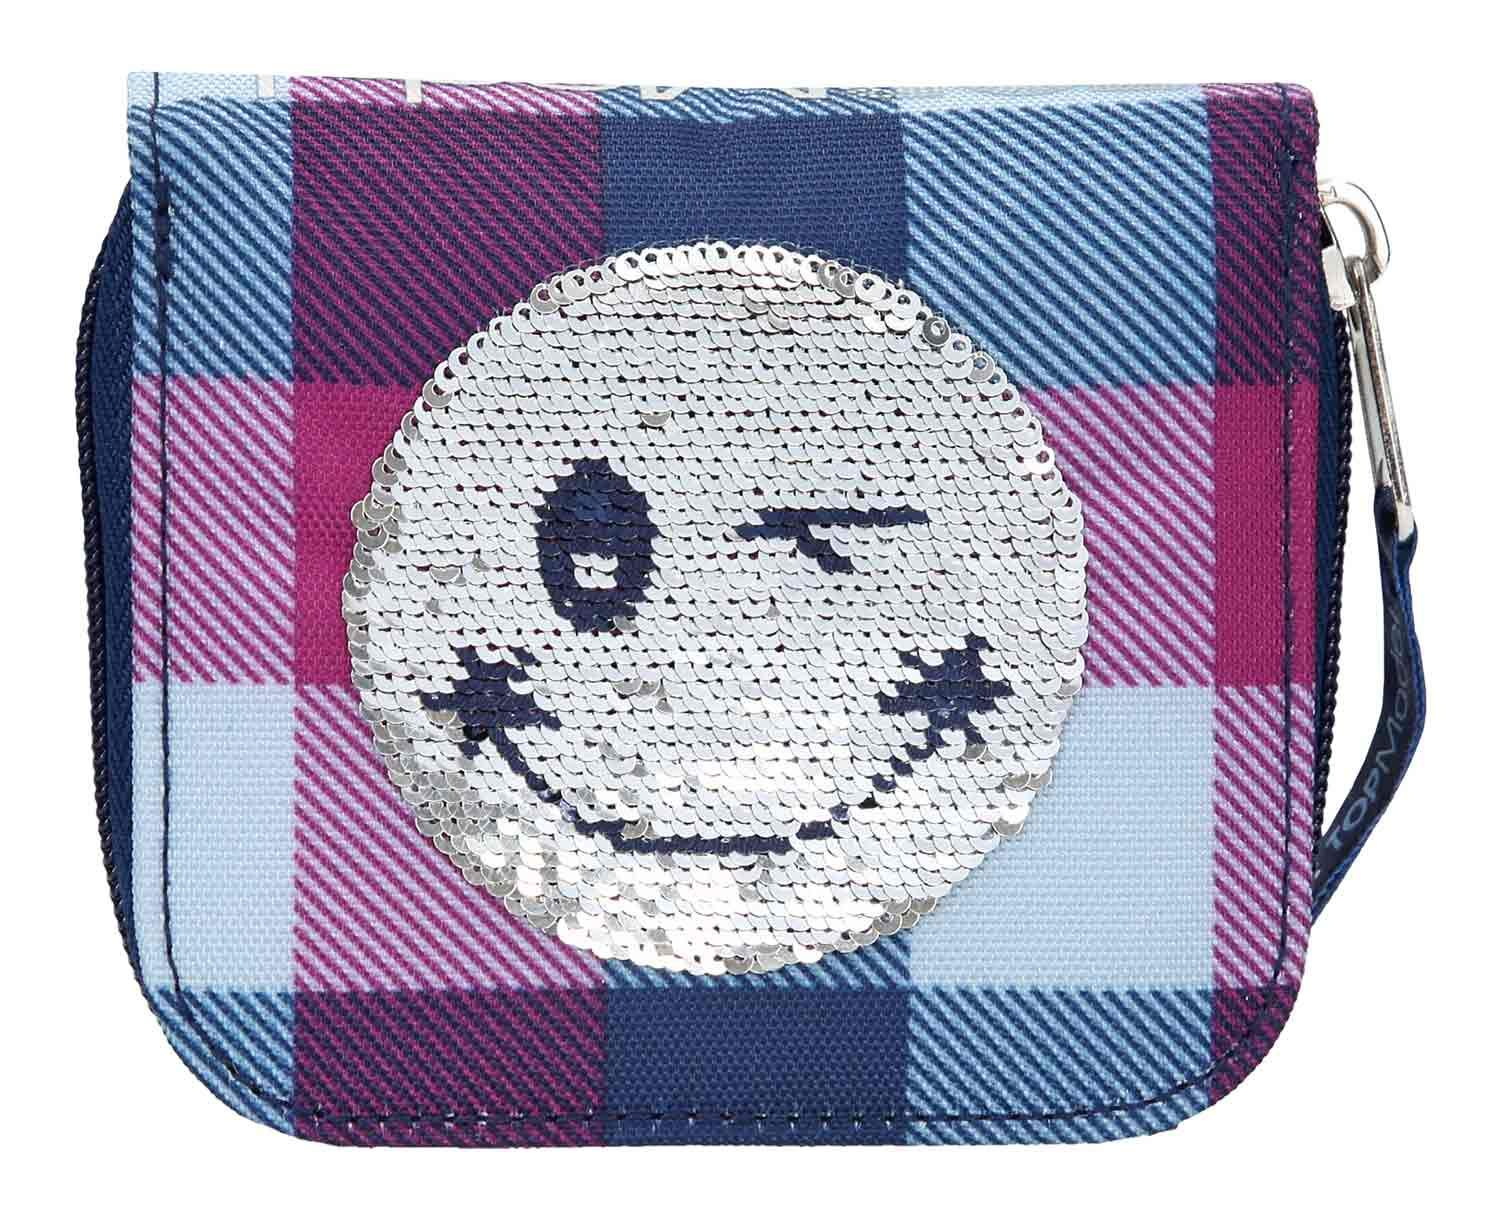 Depesche 10209 Cartera TOPModel Smiley con Lentejuelas, Color Azul